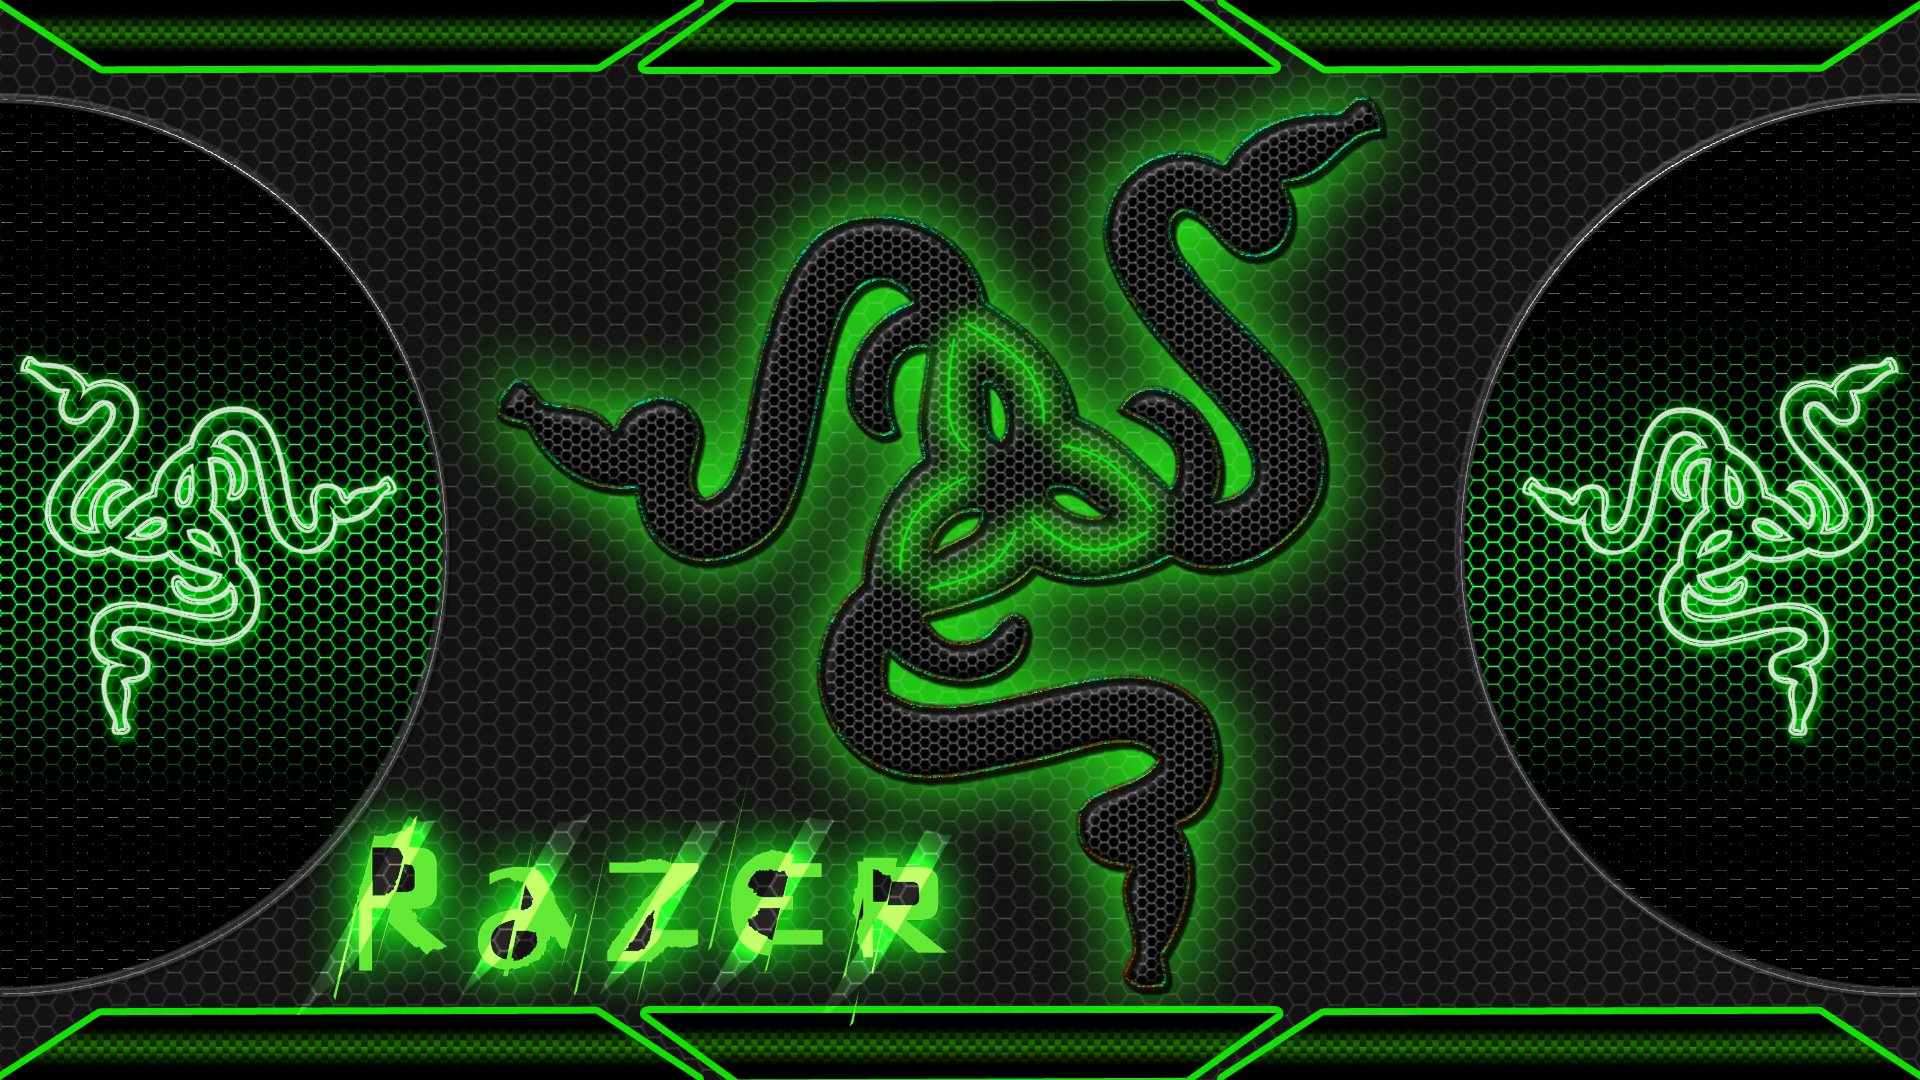 Razer wallpapers pictures images - Best wallpaper for pc gaming ...